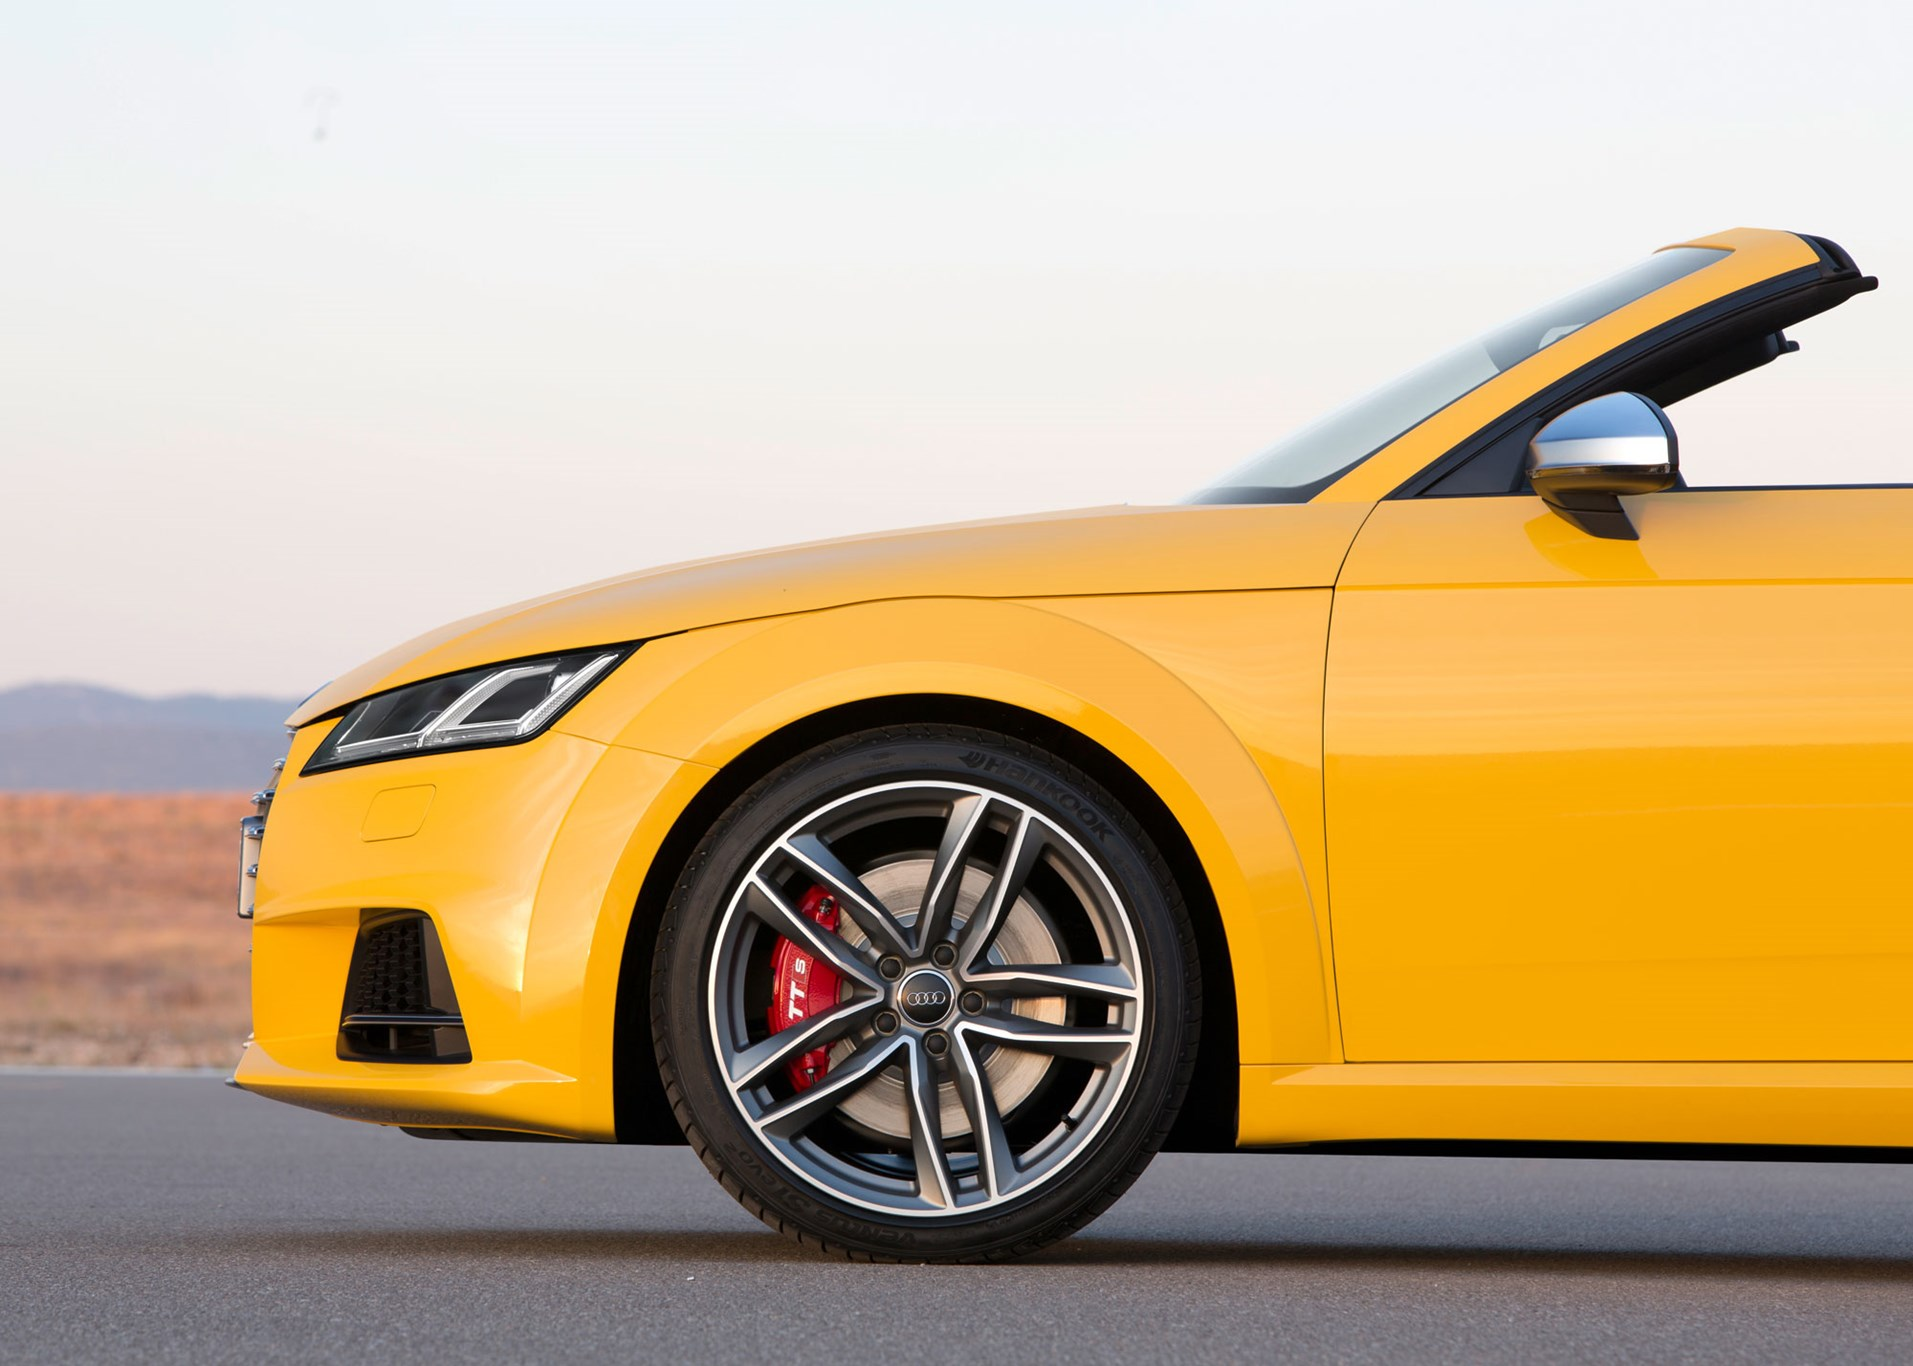 Audi Tts Roadster 2015 Review Car Magazine 2000 Tt 225 Quattro Main Fuse Box Diagram Will Sell You 20 Inch Wheels If Let It Stick With The 18s